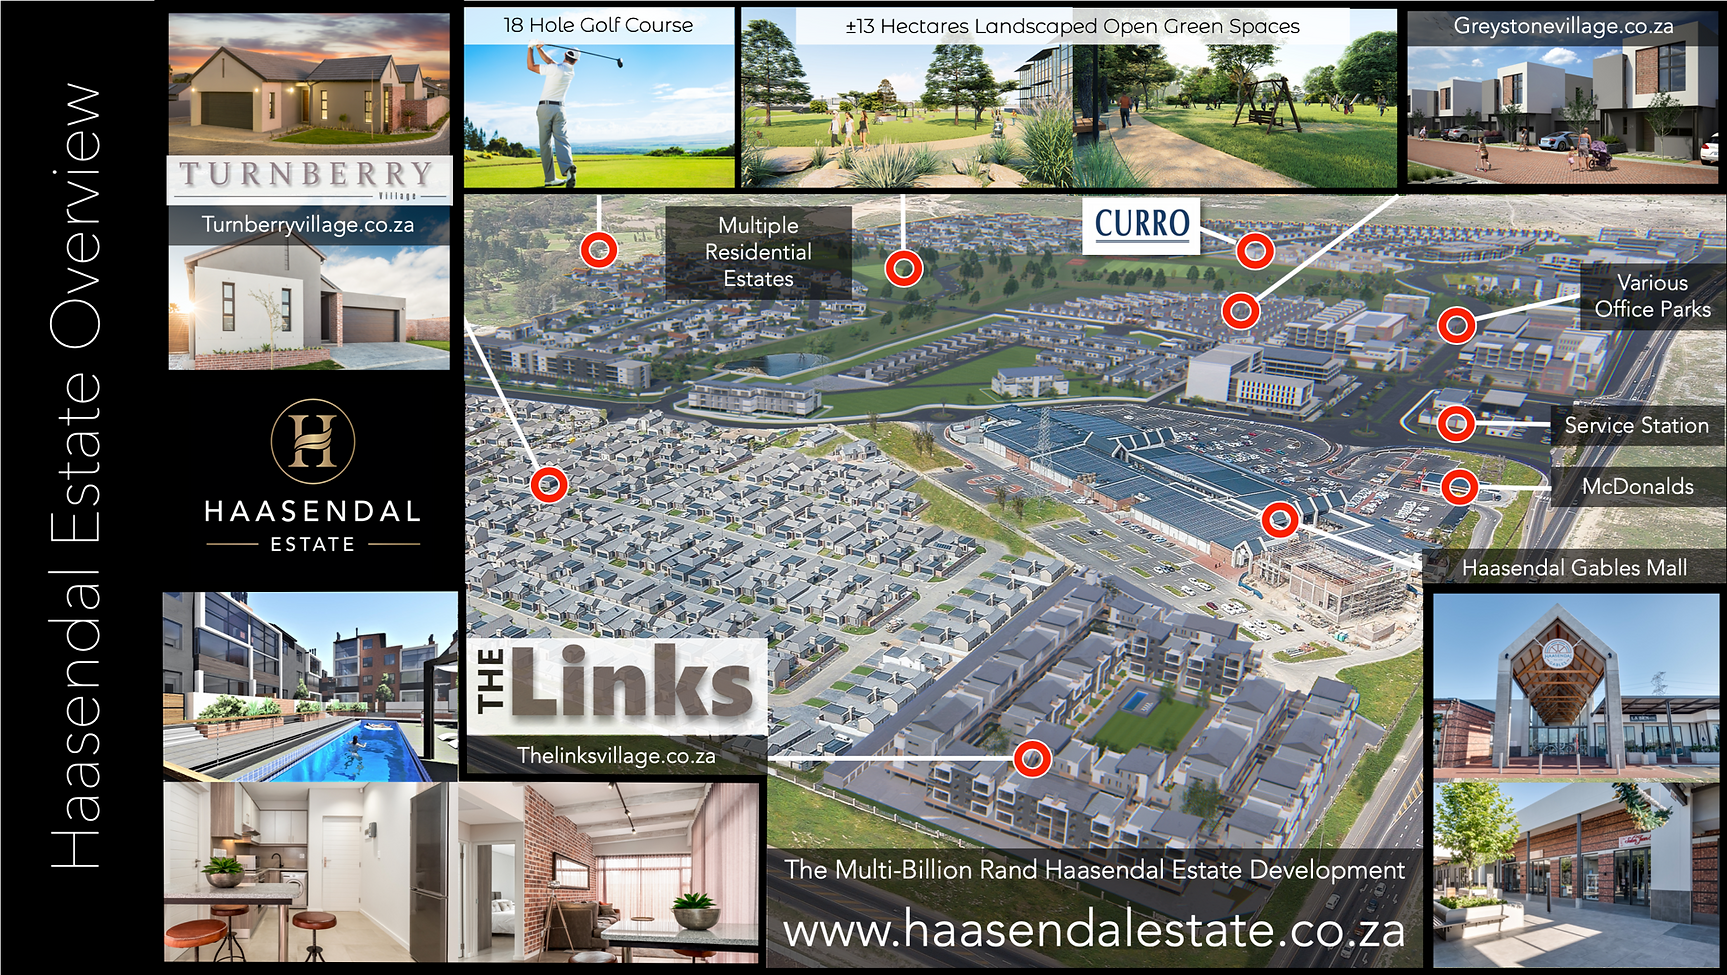 HAASENDAL BIG PIC OVERVIEW.png